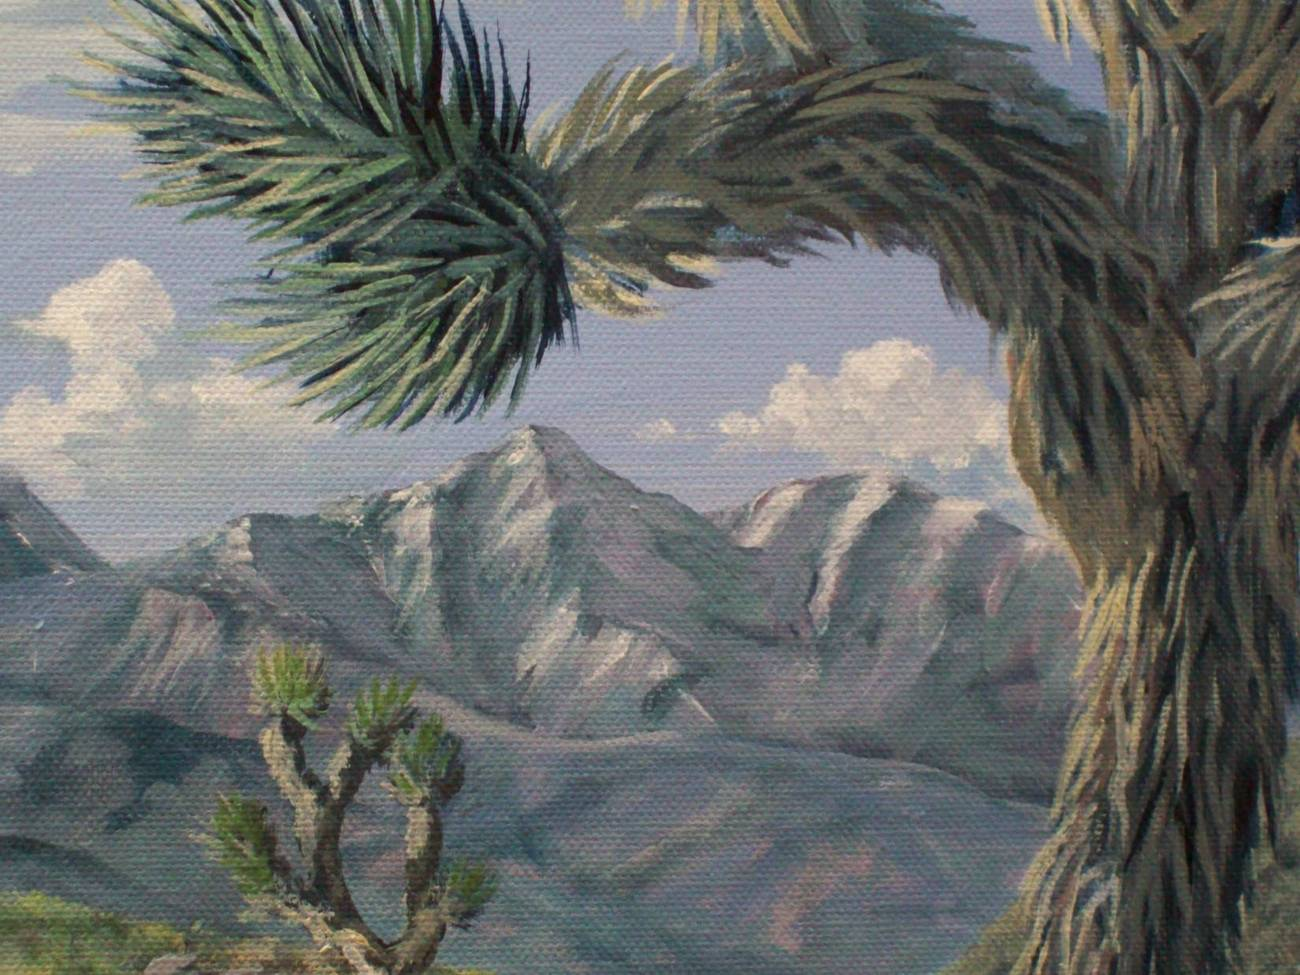 Desert Joshua Mountains Landscape Original Oil Painting on Stretched Canvas